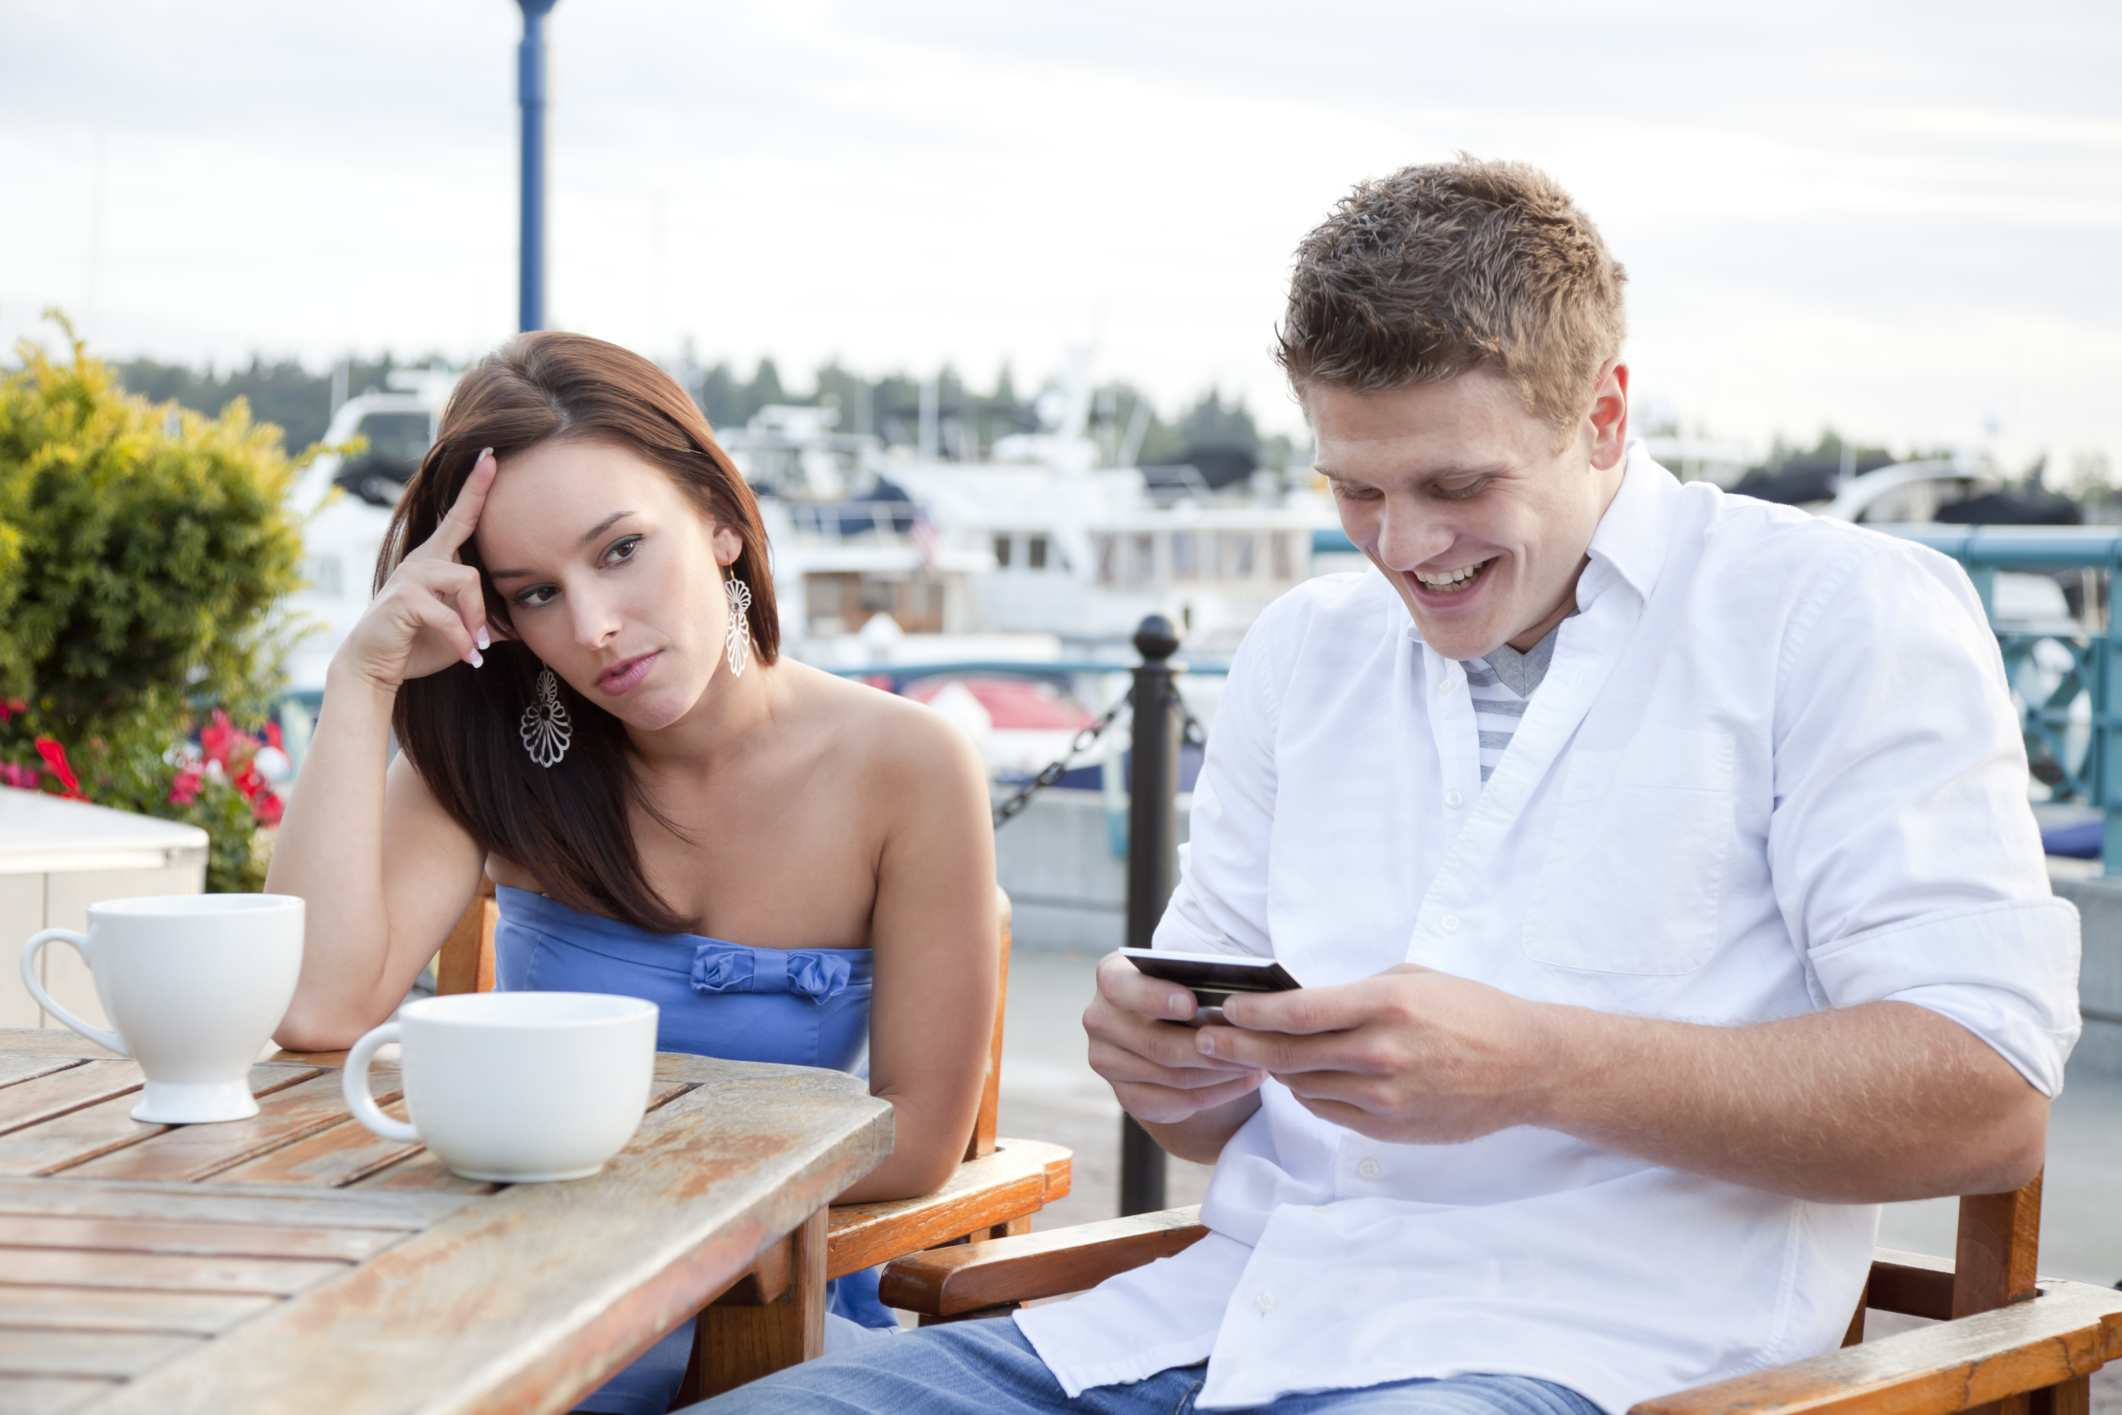 Young woman looking irritated by her date who is preoccupied with his phone